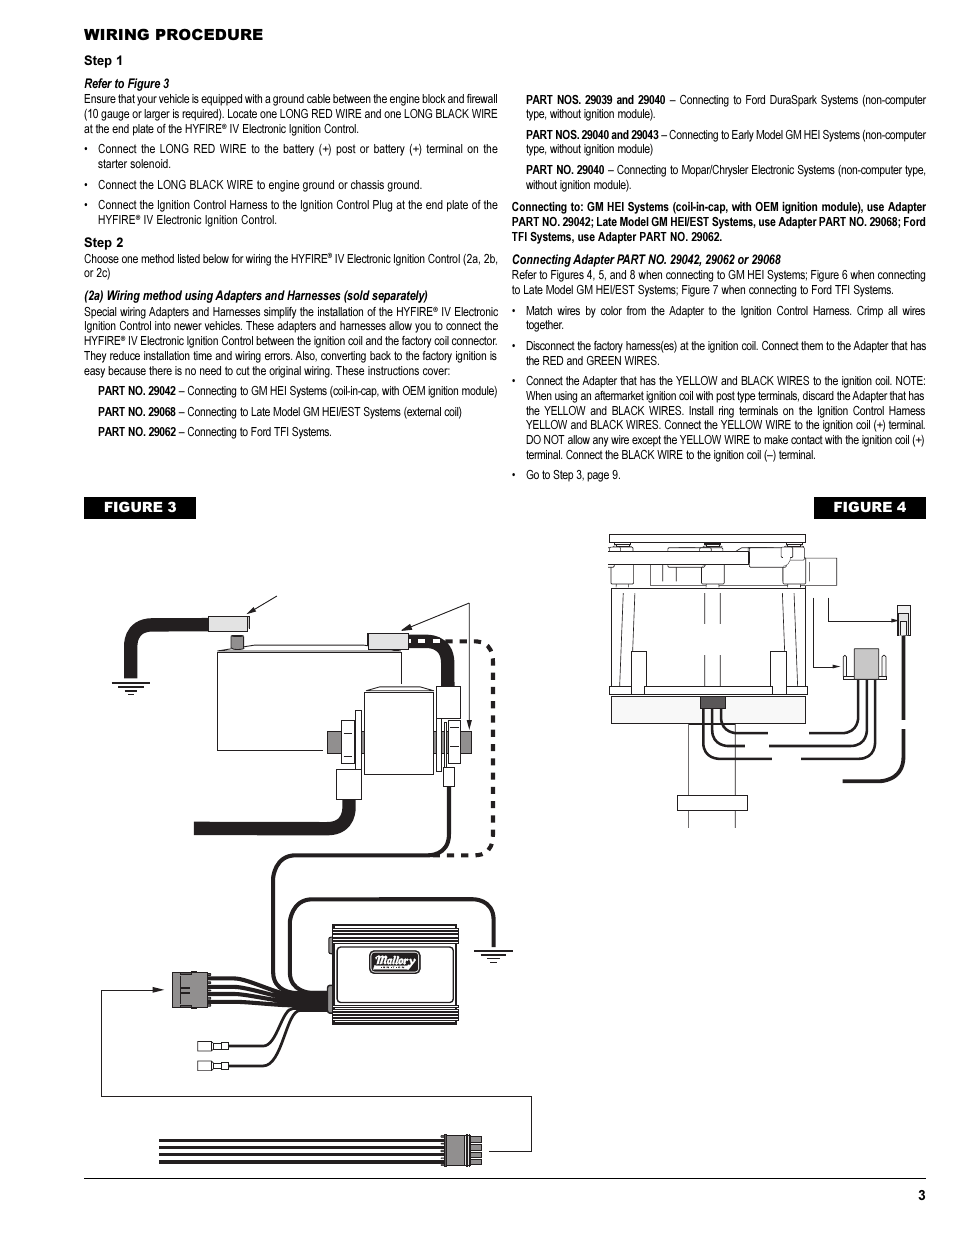 medium resolution of wiring procedure figure 4 12v battery mallory ignitionwiring procedure figure 4